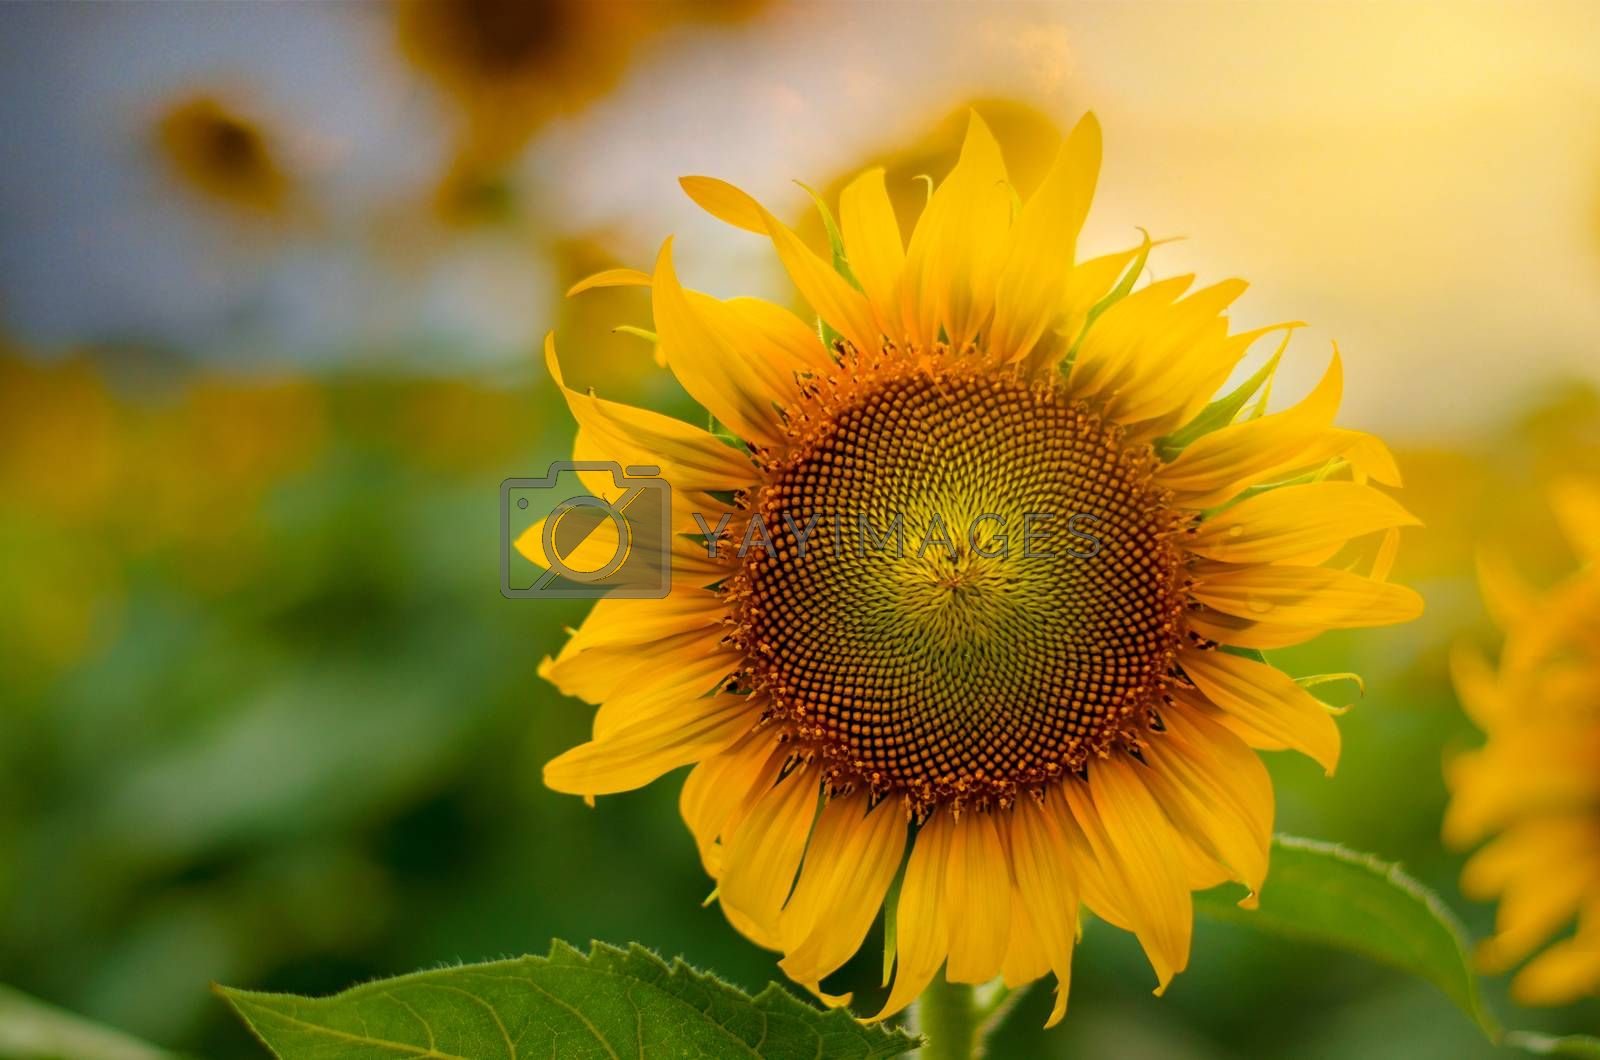 Sunflowers full bloom and light in the morning. by Sarayut